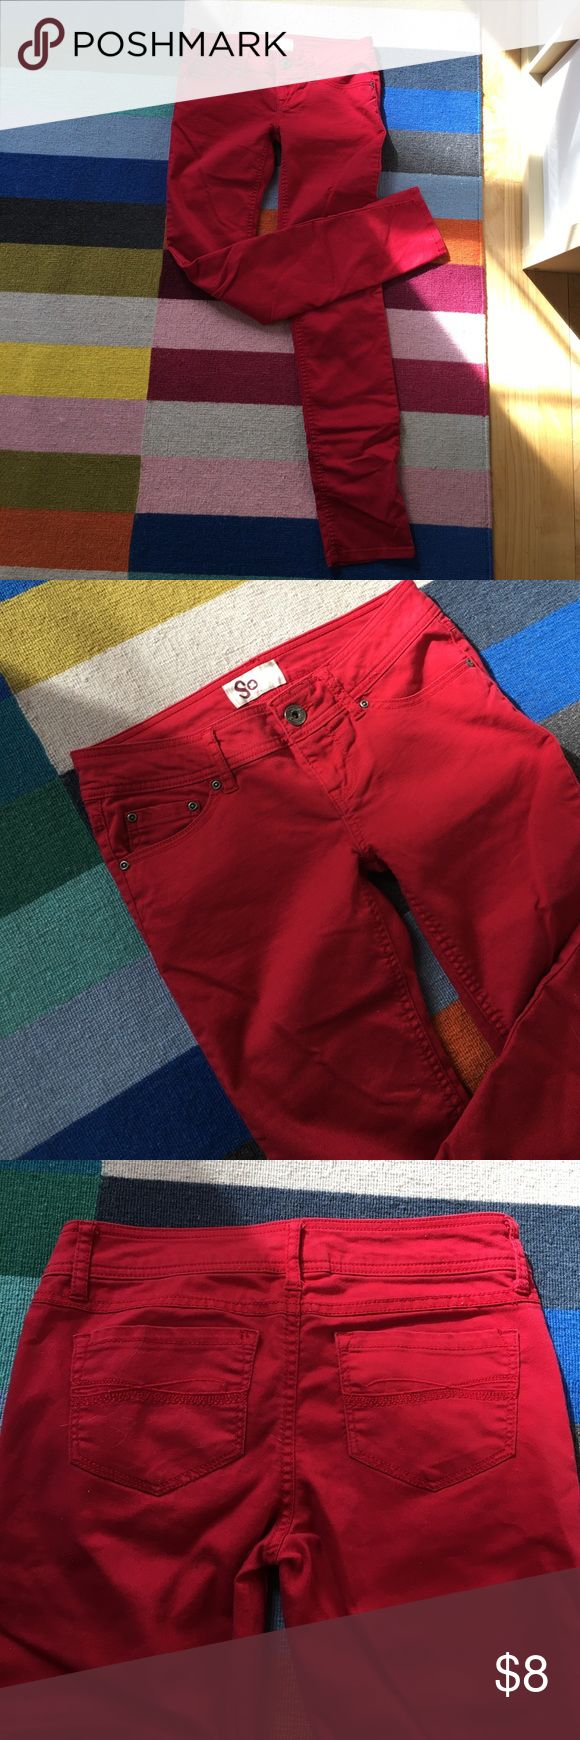 Red skinny jean Red skinny jeans, rarely worn. Low rise So by kohls Jeans Skinny